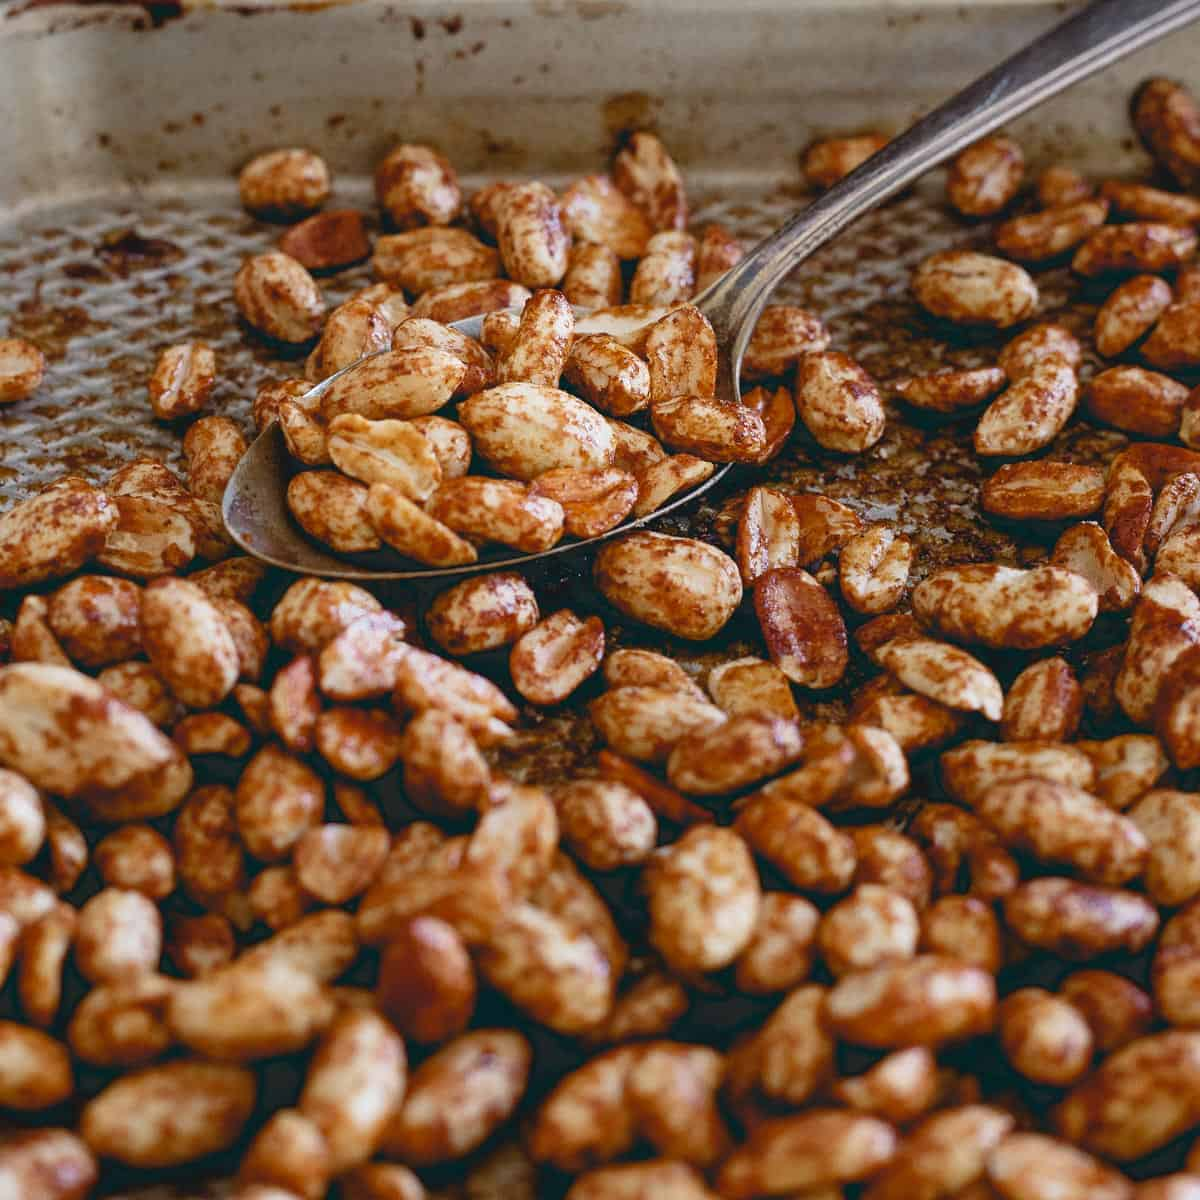 Molasses roasted peanuts bring a subtle sweetness to this creamy gingerbread peanut butter.